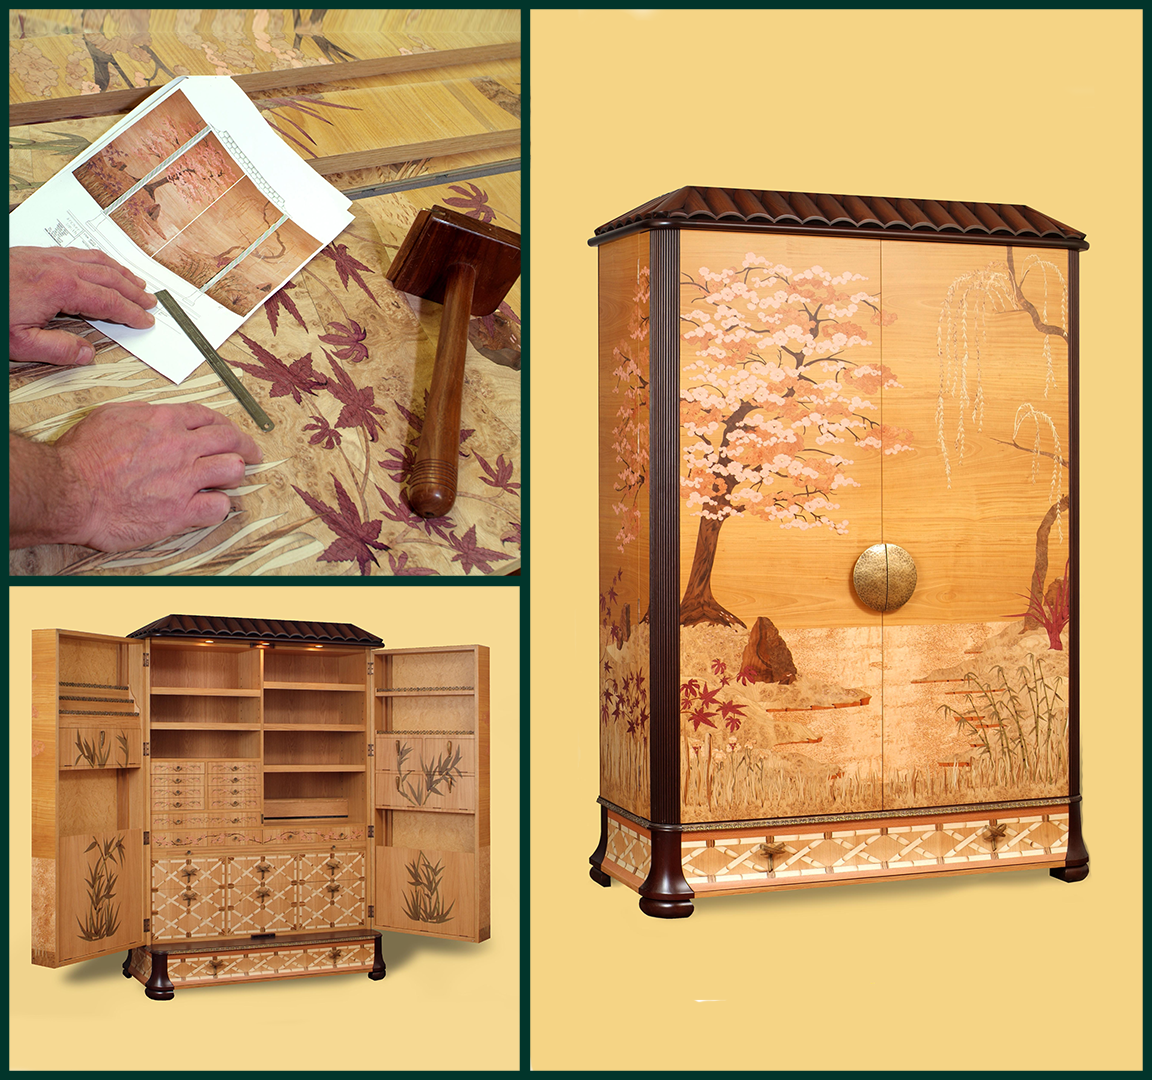 Collection of craft images - Wardrobe